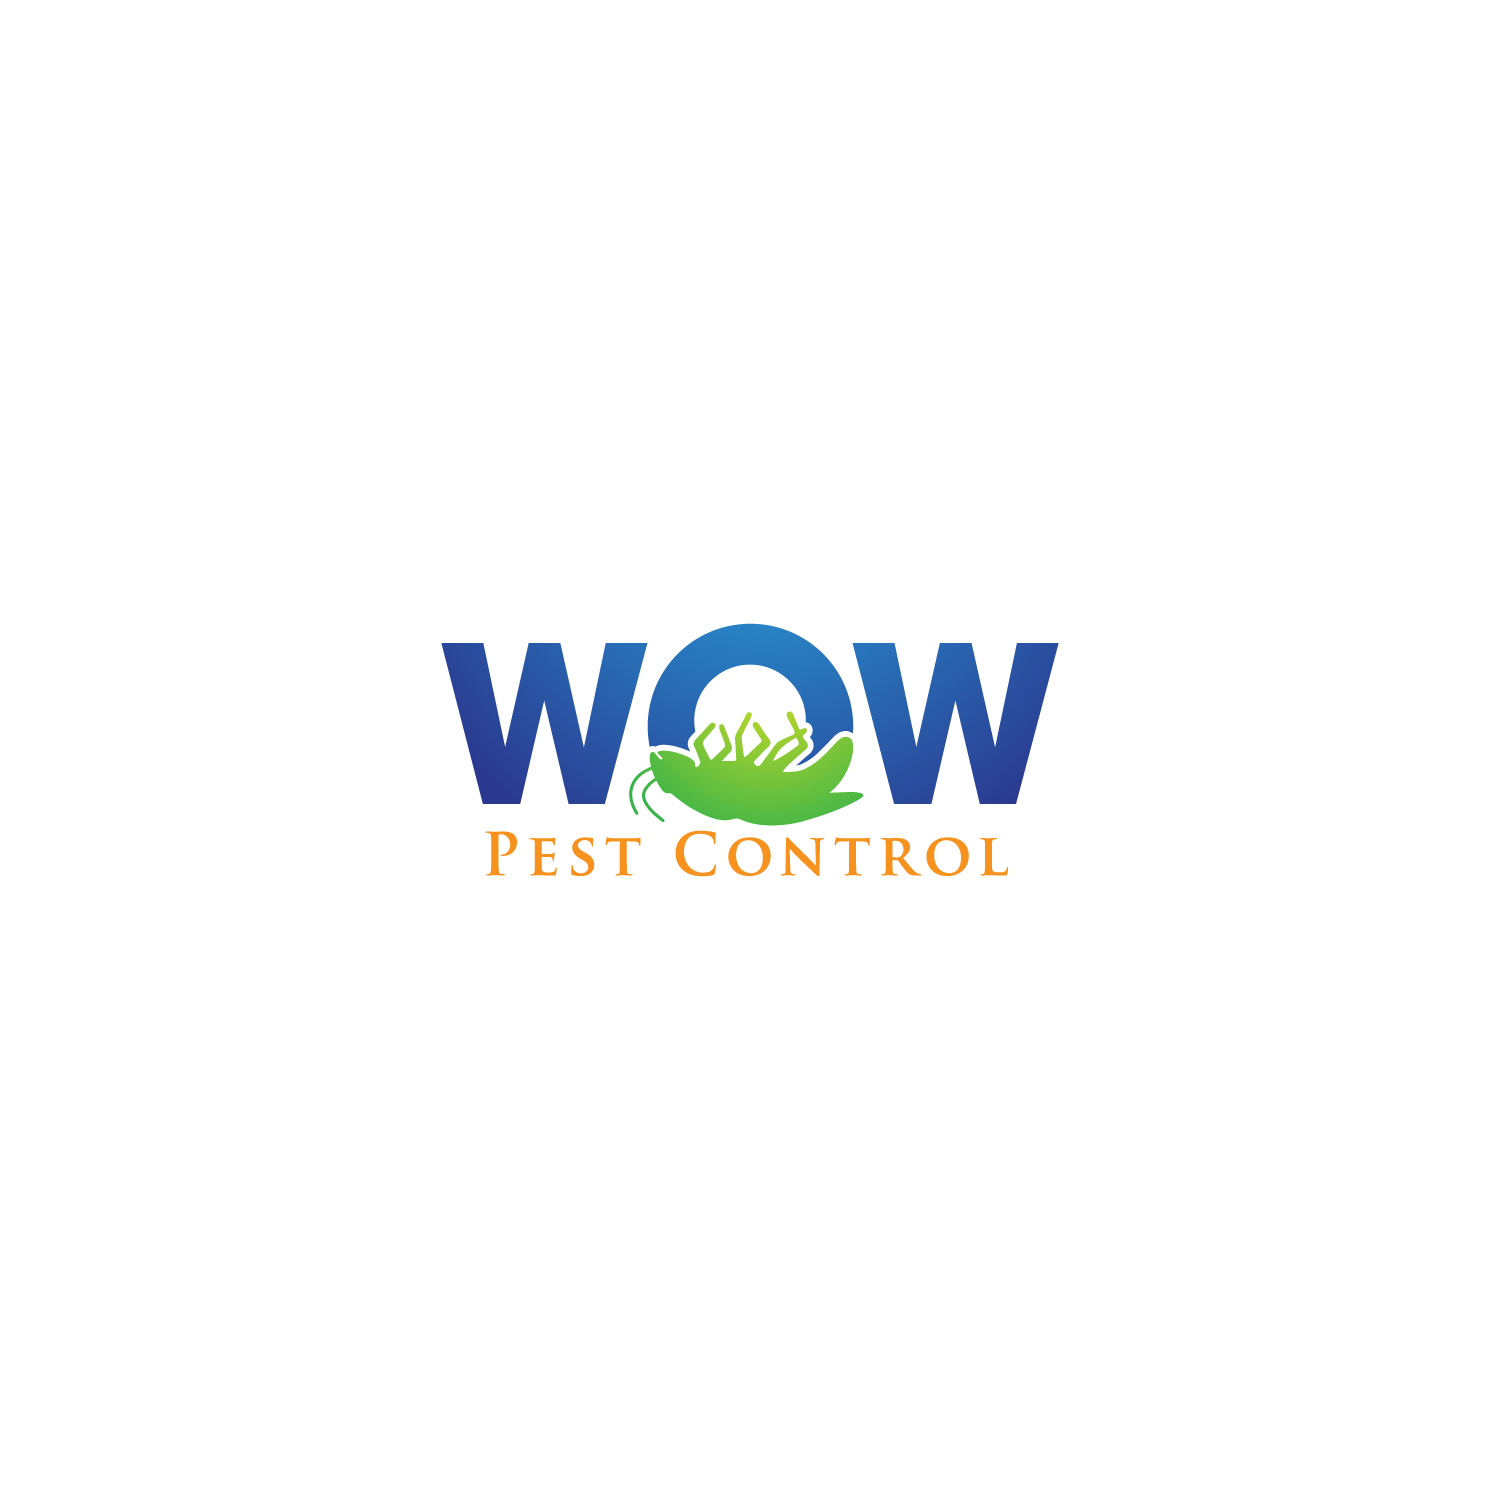 WOW Pest Control  is helping by giving proceeds of services to help WHF. They have also helped veterans in need of pest control services. Please give them a call if you are looking for pest control services.